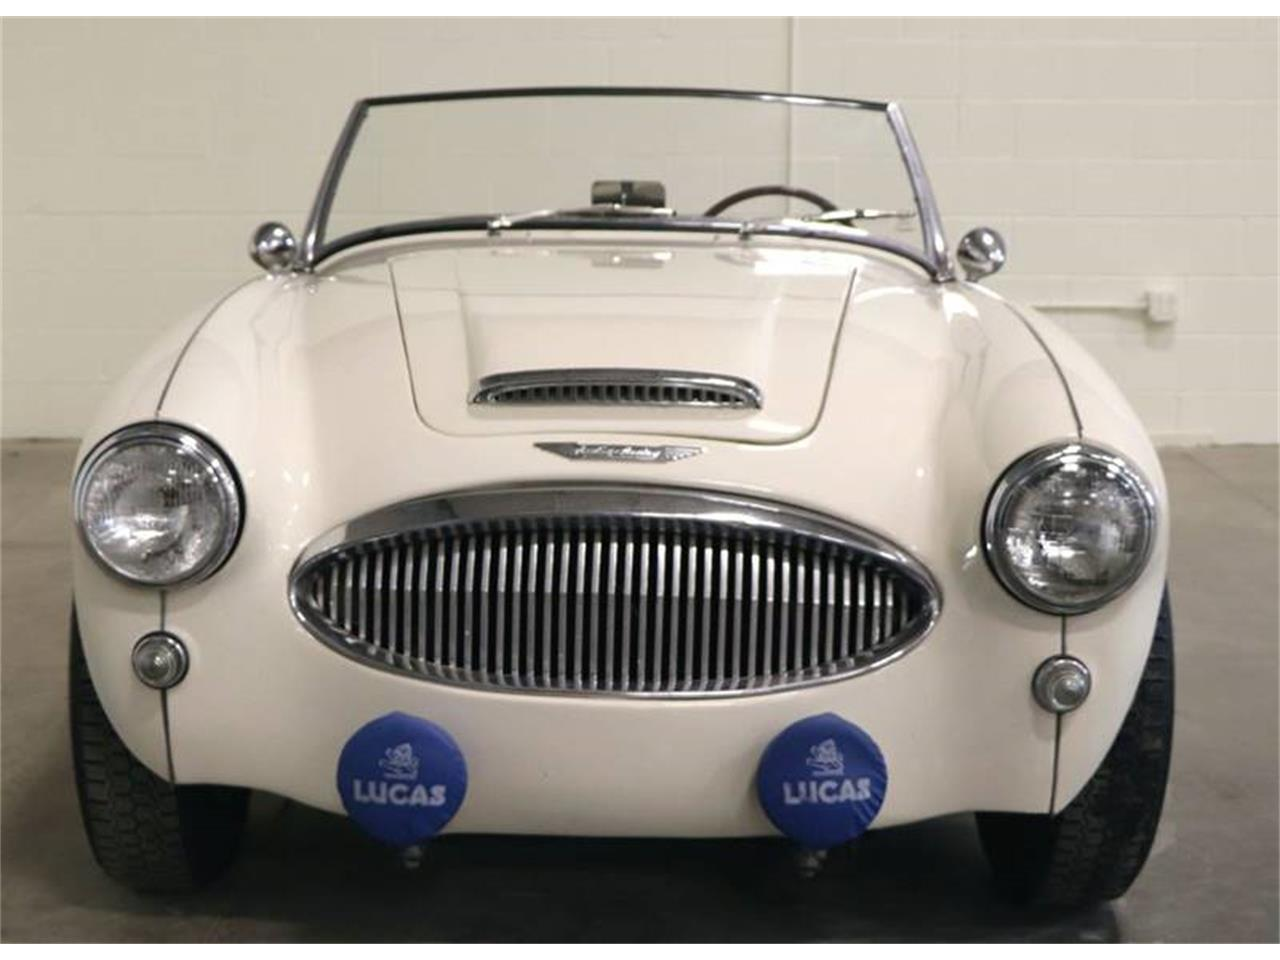 1962 Austin-Healey 3000 (CC-1151750) for sale in St Louis, Missouri